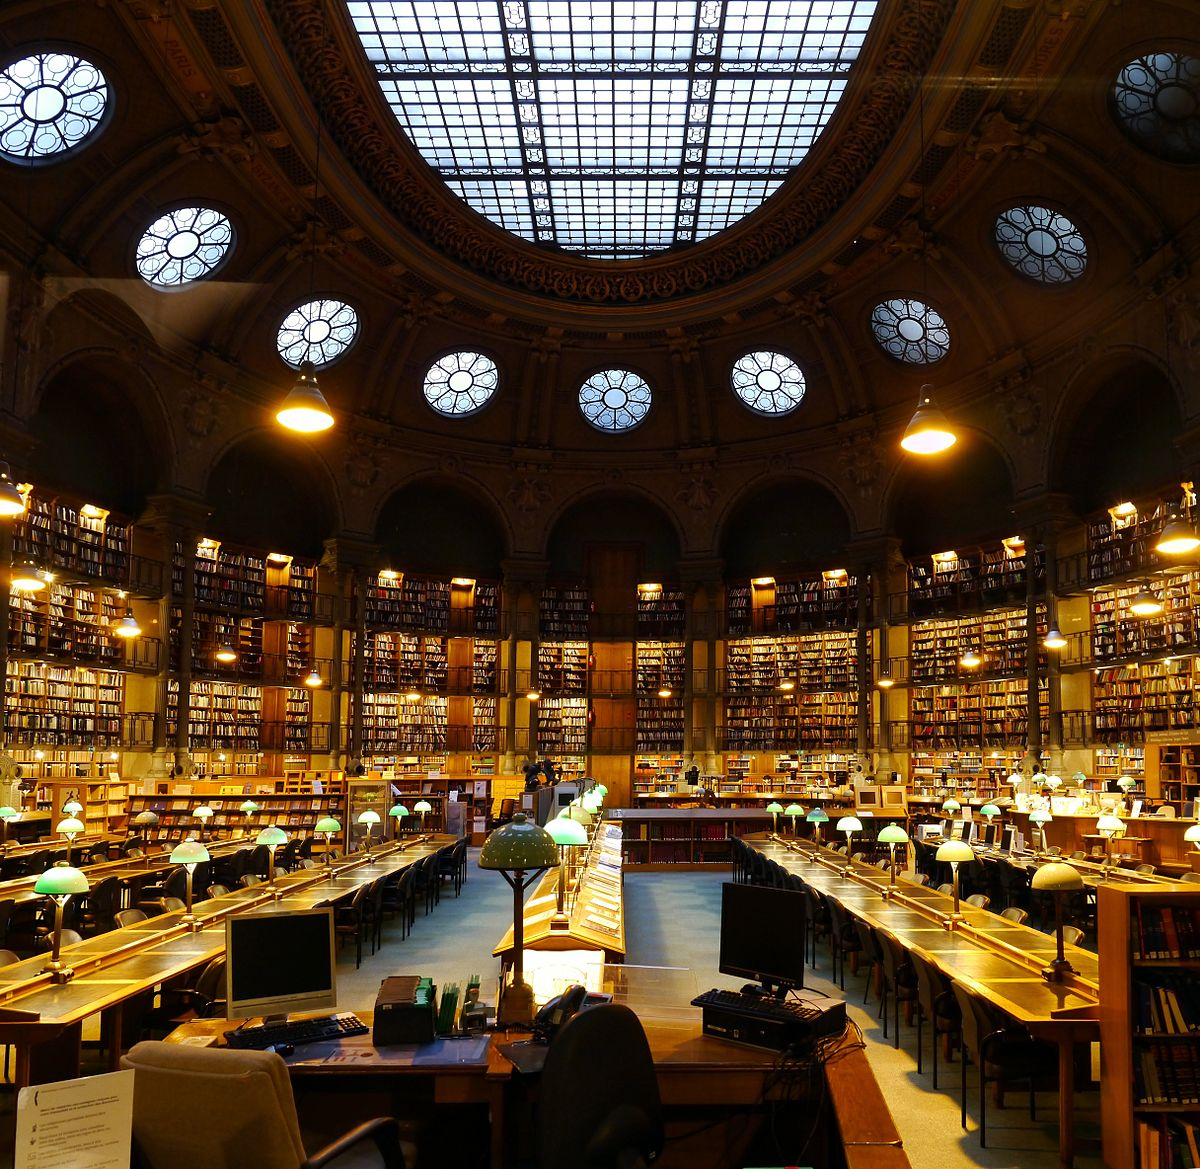 bibliotheque nationale de france wikidata